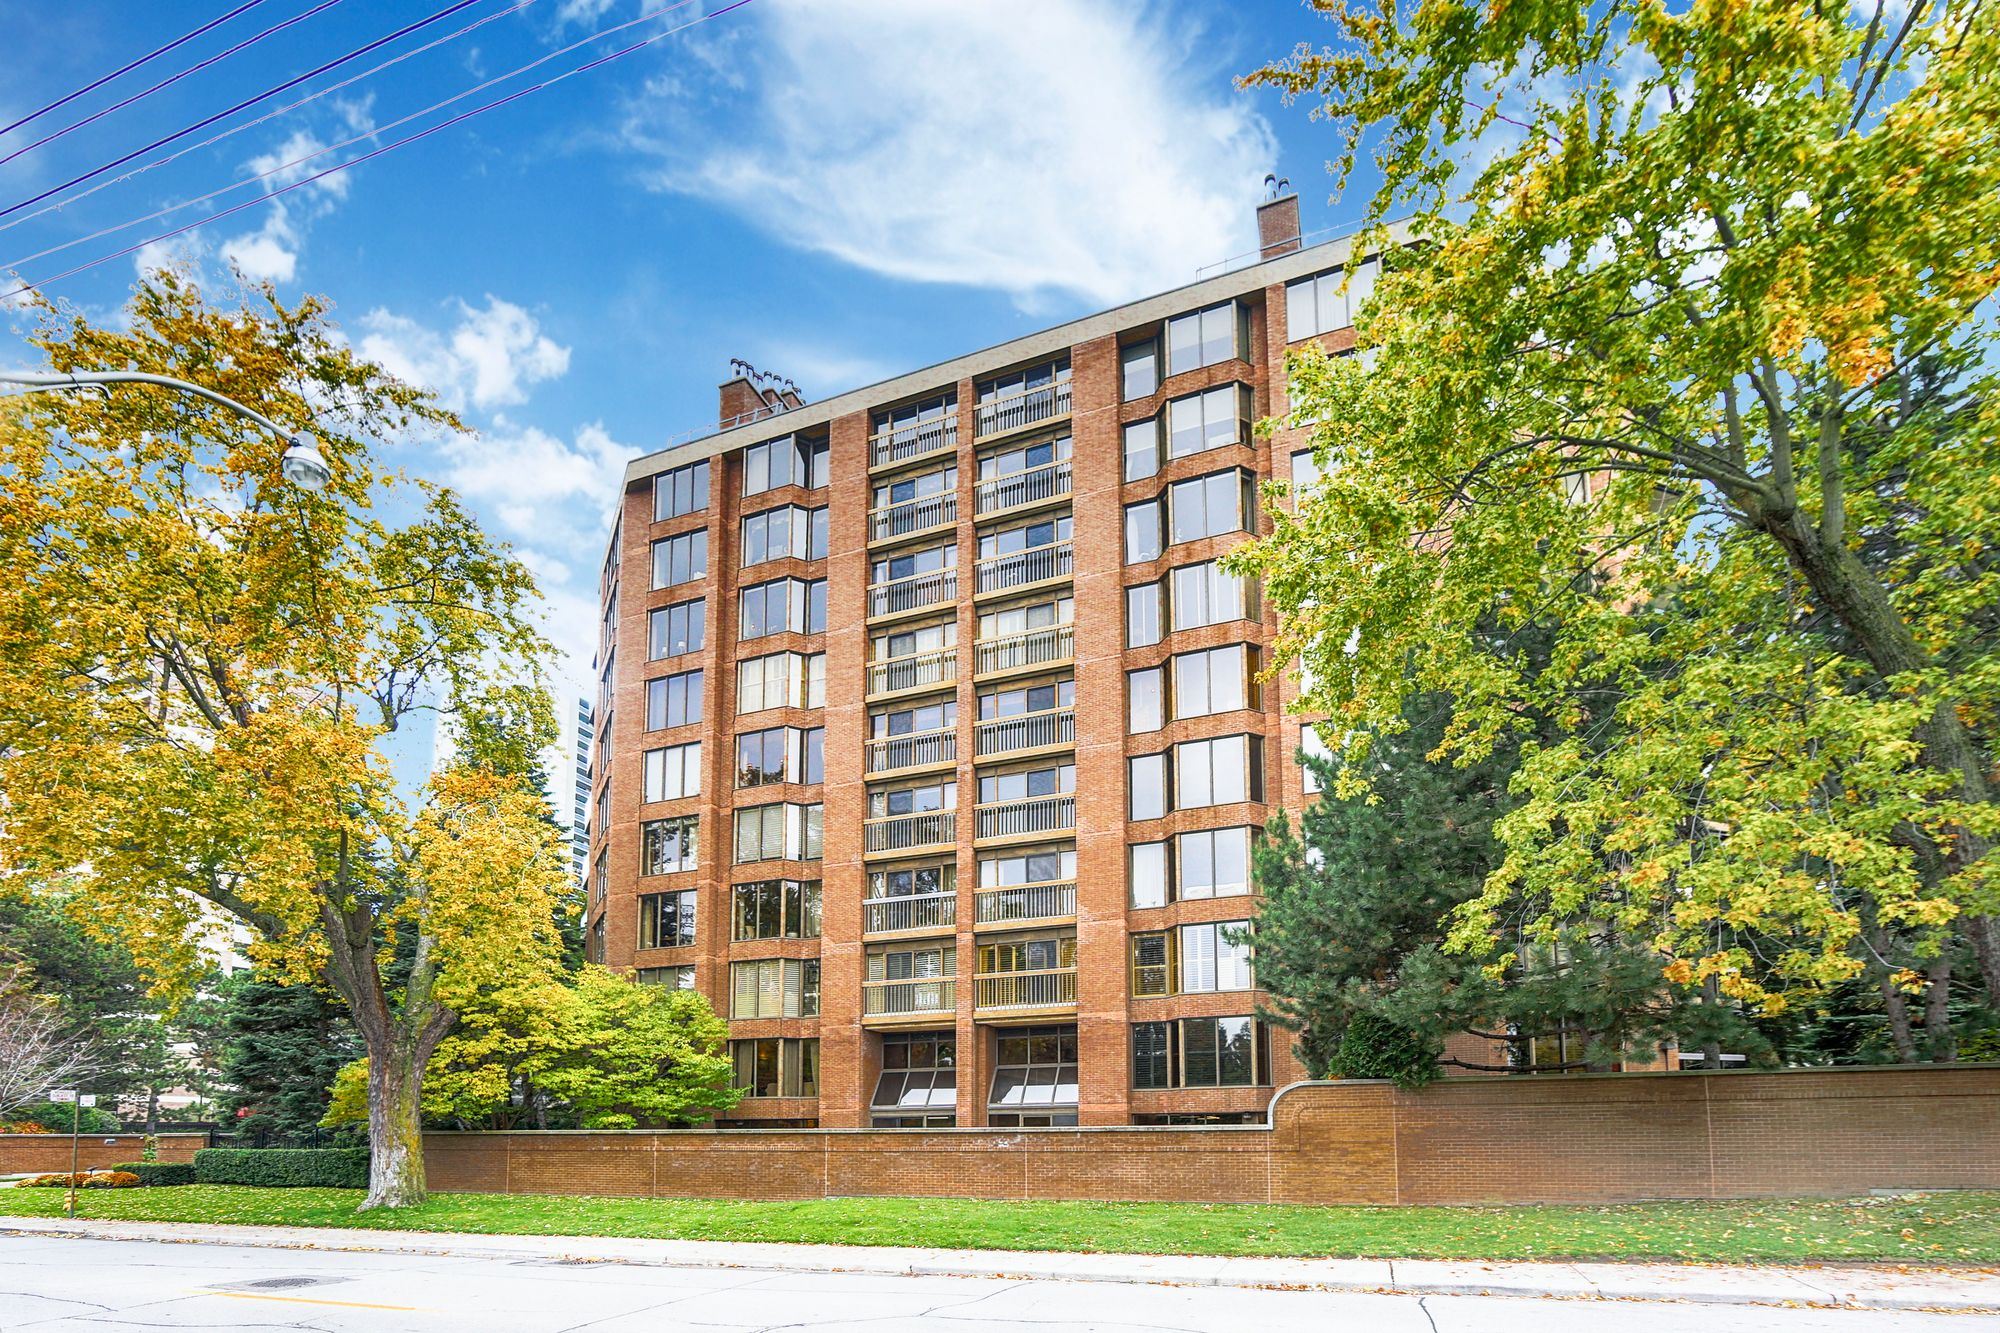 70 Rosehill Ave at 70 Rosehill Ave. This condo is located in  Midtown, Toronto - image #2 of 3 by Strata.ca